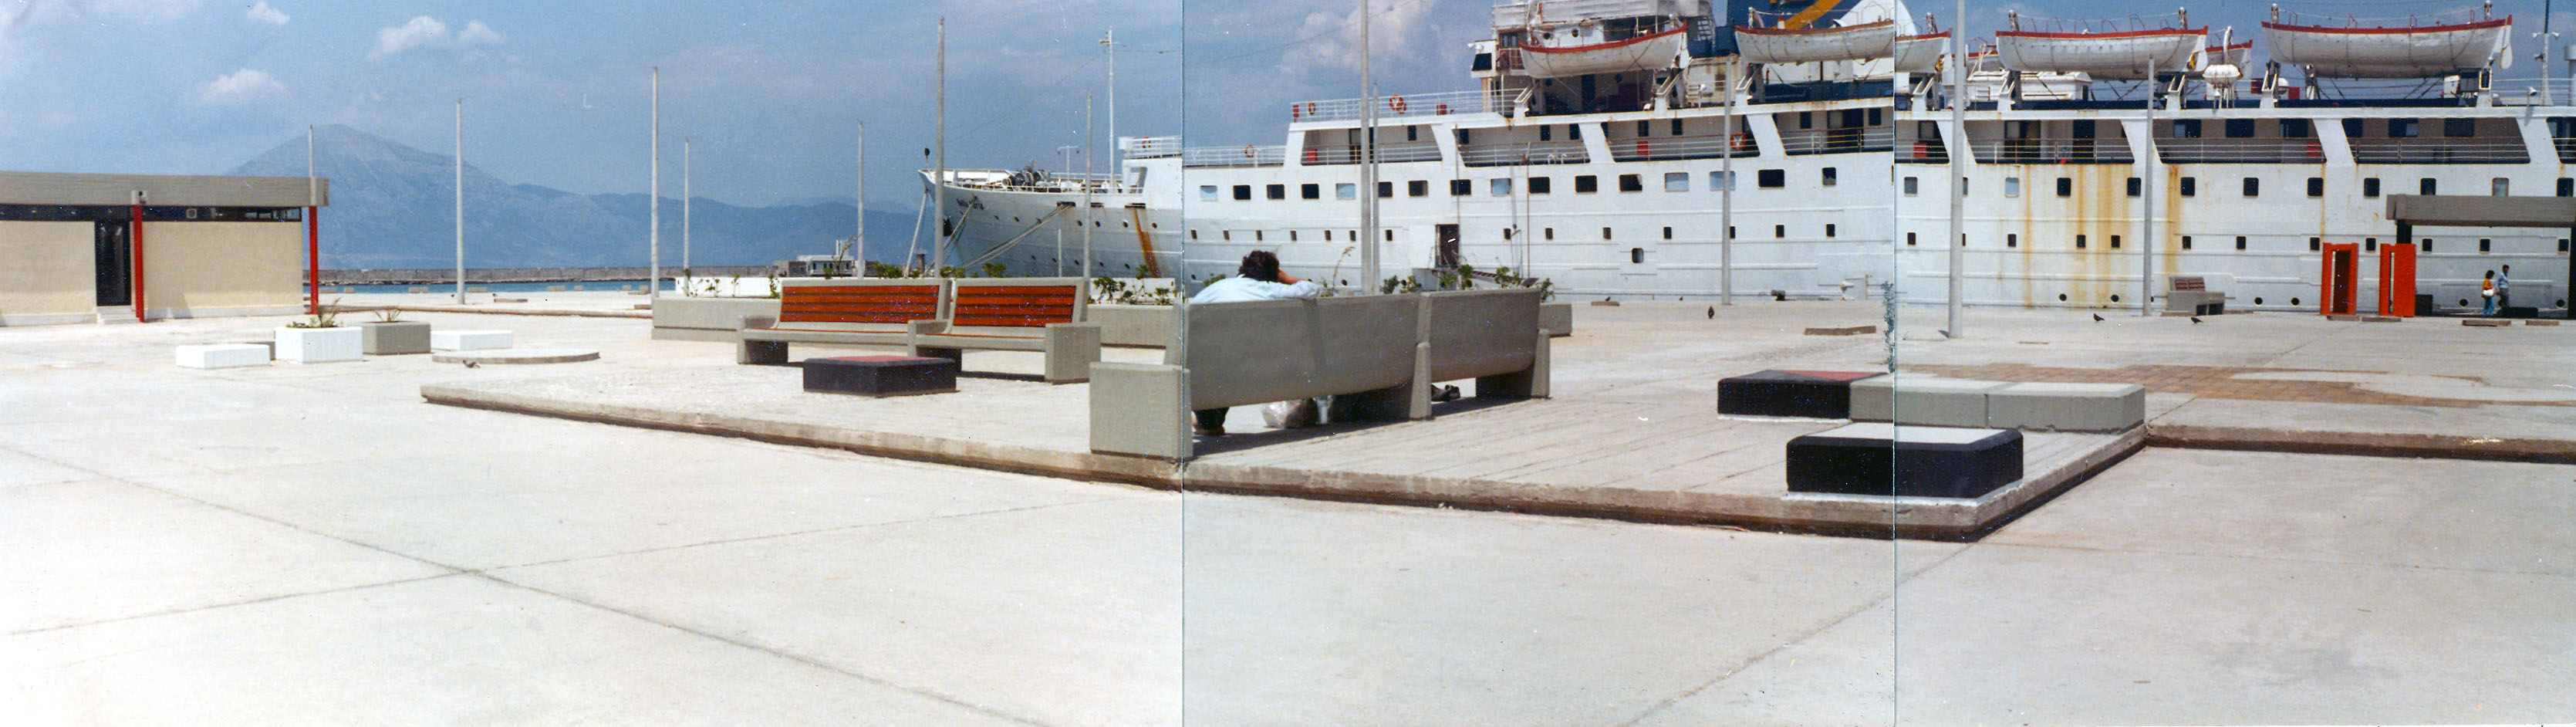 Φωτογραφίες έργων - Architectural Portfolio Pier at the St Nicholas' Harbour, Patra, Greece